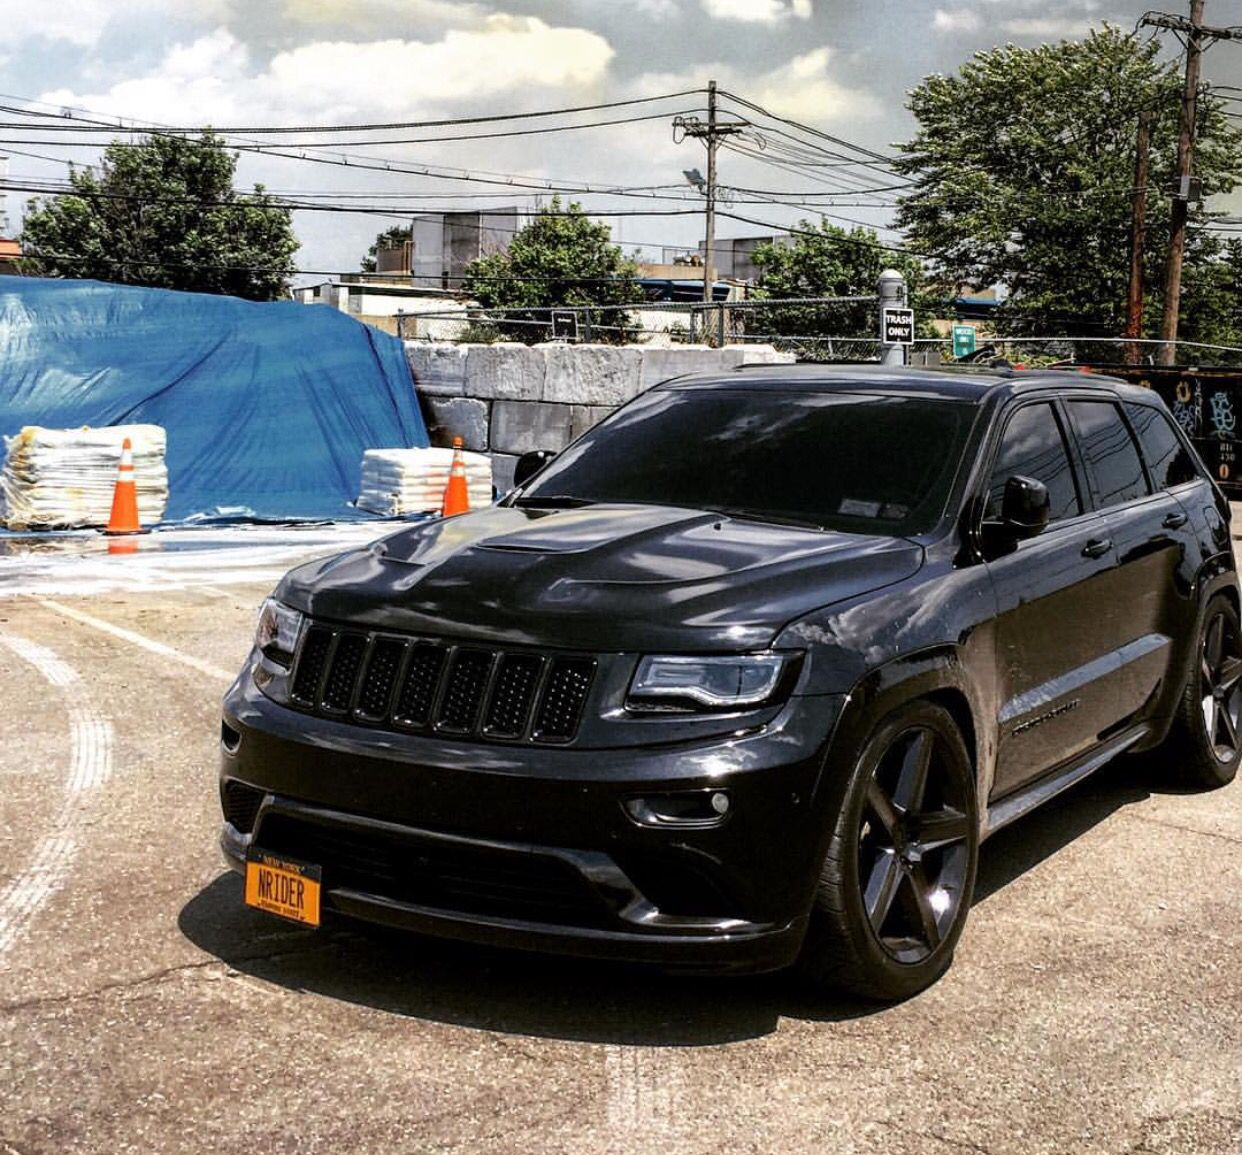 Pin By Matt Beumer On Grand Cherokee Jeep Grand Cherokee Srt Srt Jeep Jeep Srt8